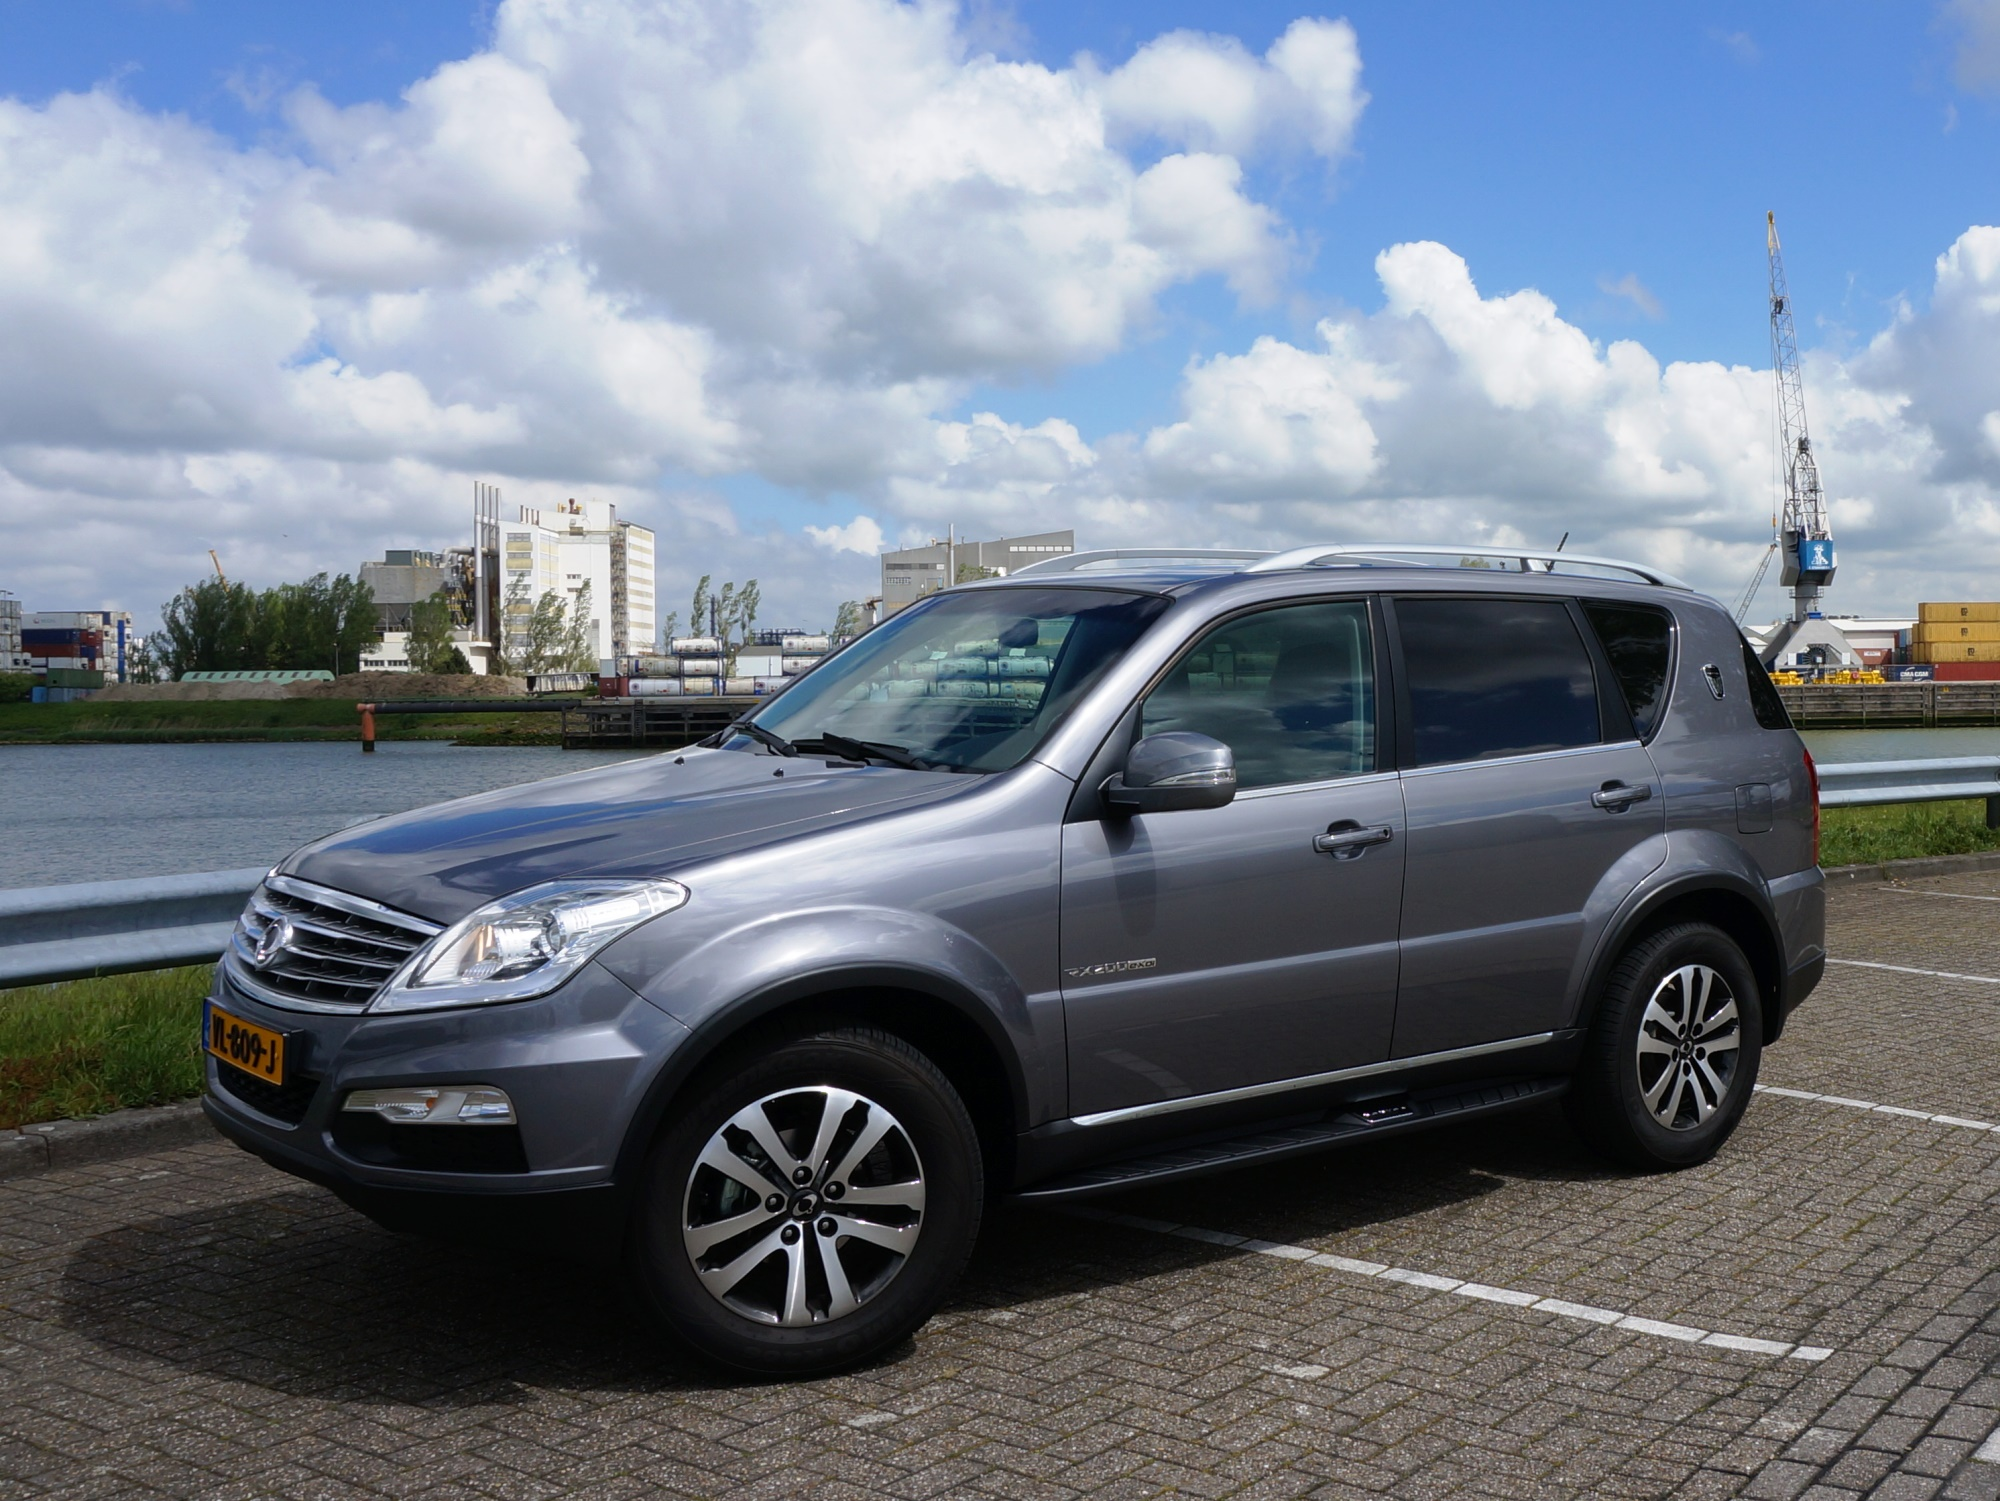 ssangyong rexton w rx200 e xdi 4wd. Black Bedroom Furniture Sets. Home Design Ideas